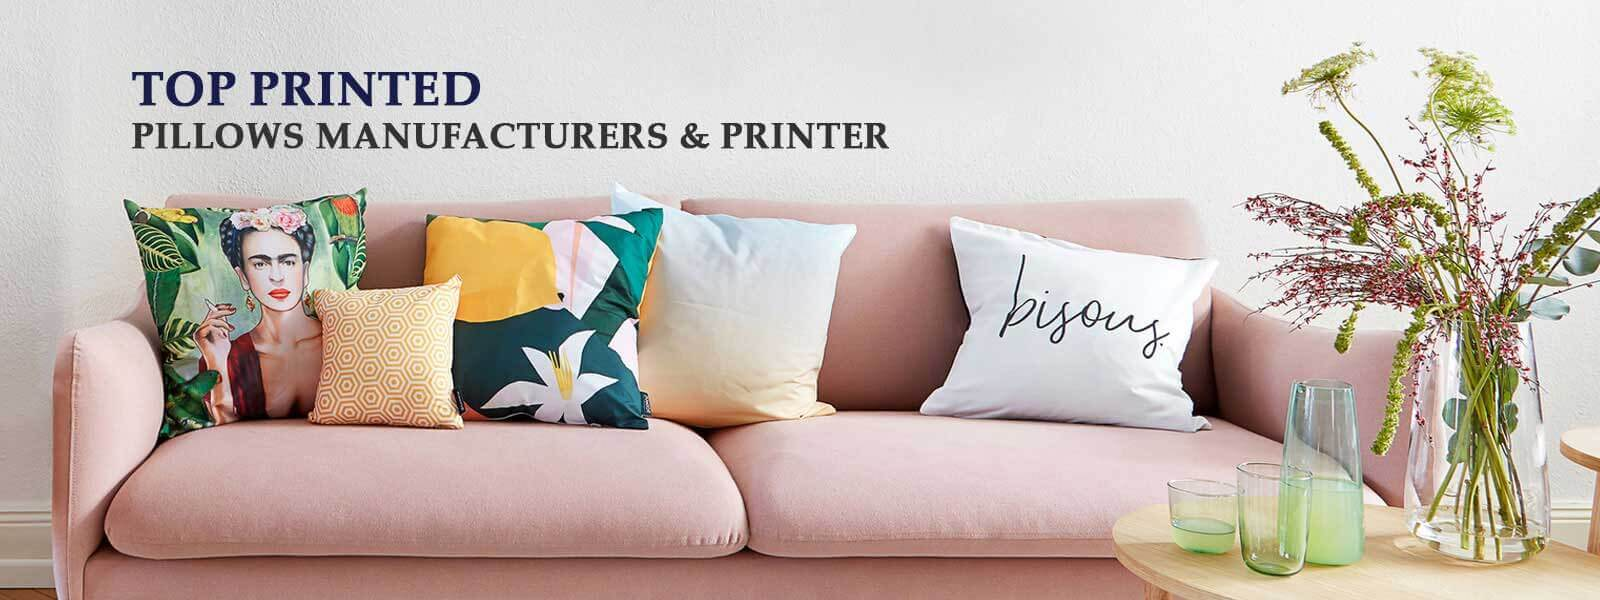 Top Printed Pillow